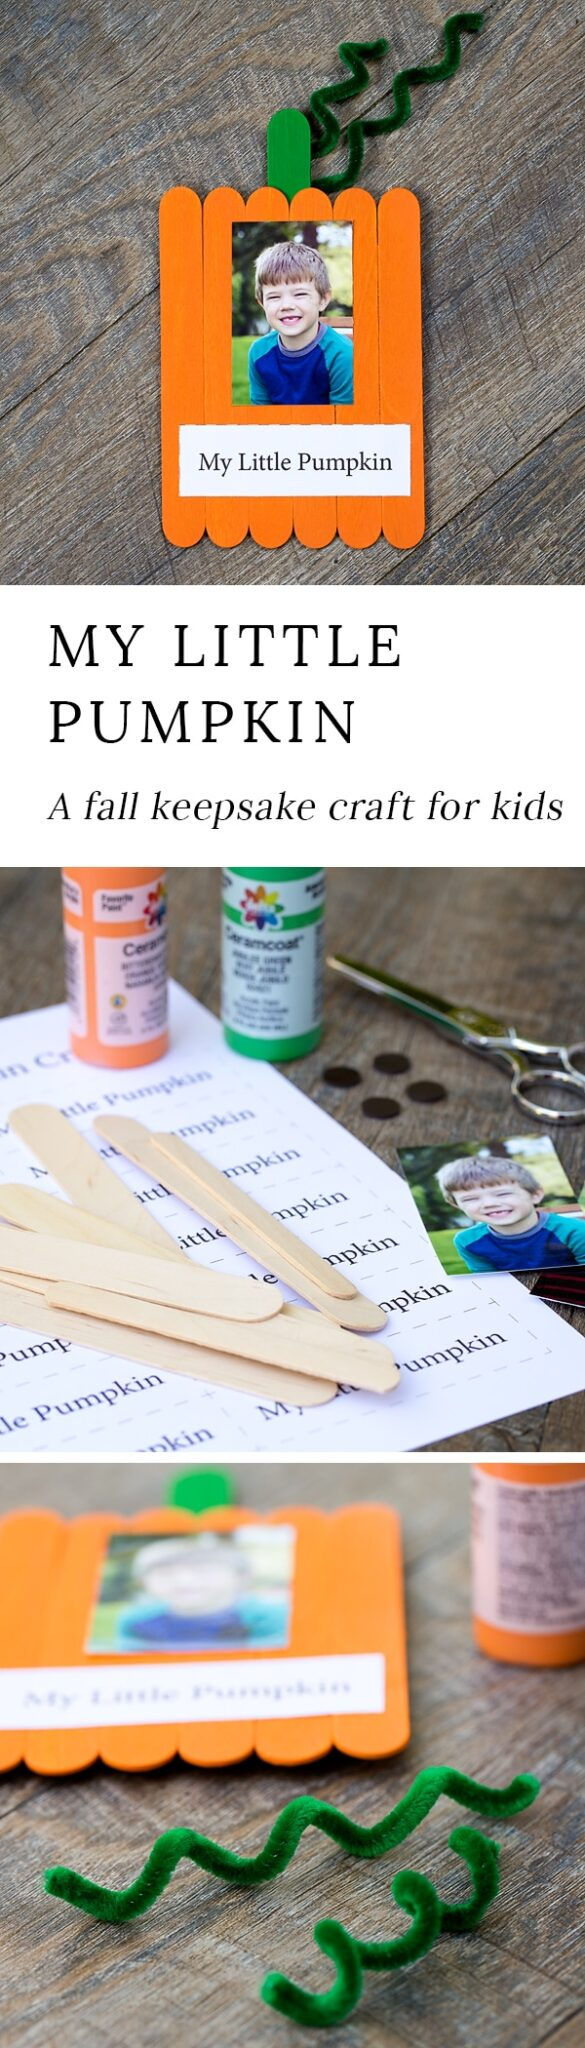 Just in time for fall, learn how to make an adorable Popsicle stick pumpkin keepsake with craft sticks, paint, and glue. #fallcrafts